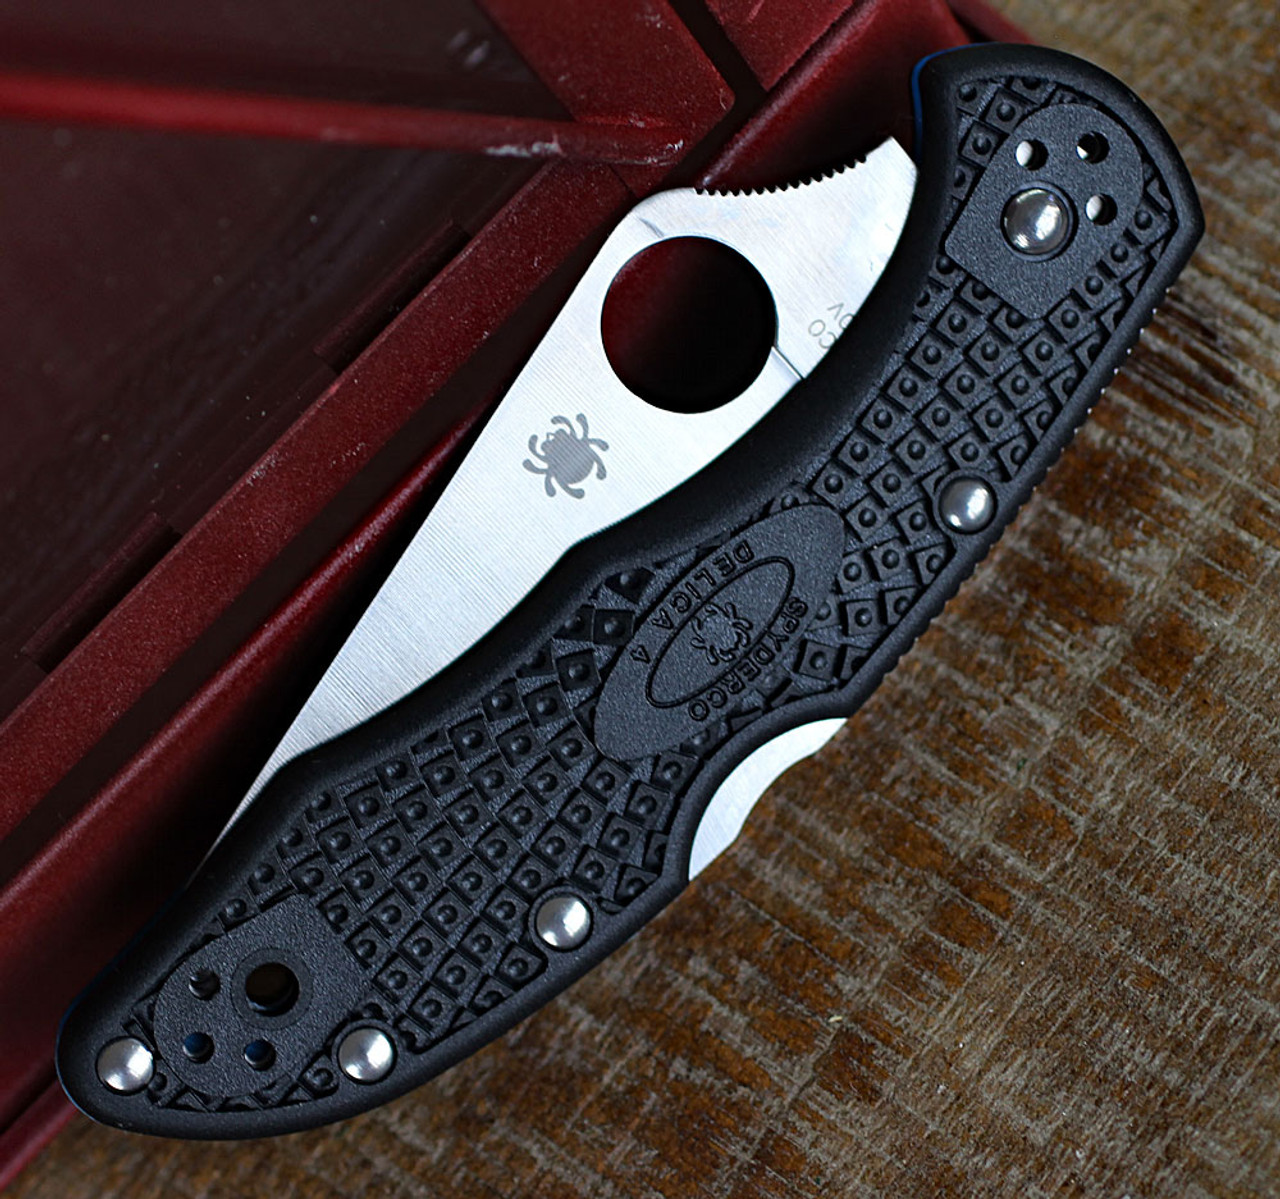 Spyderco C11FPBKS90V FRN Blue Lined Delica 4 w/CPM S90V, Knifeworks Exclusive-Limited to 600